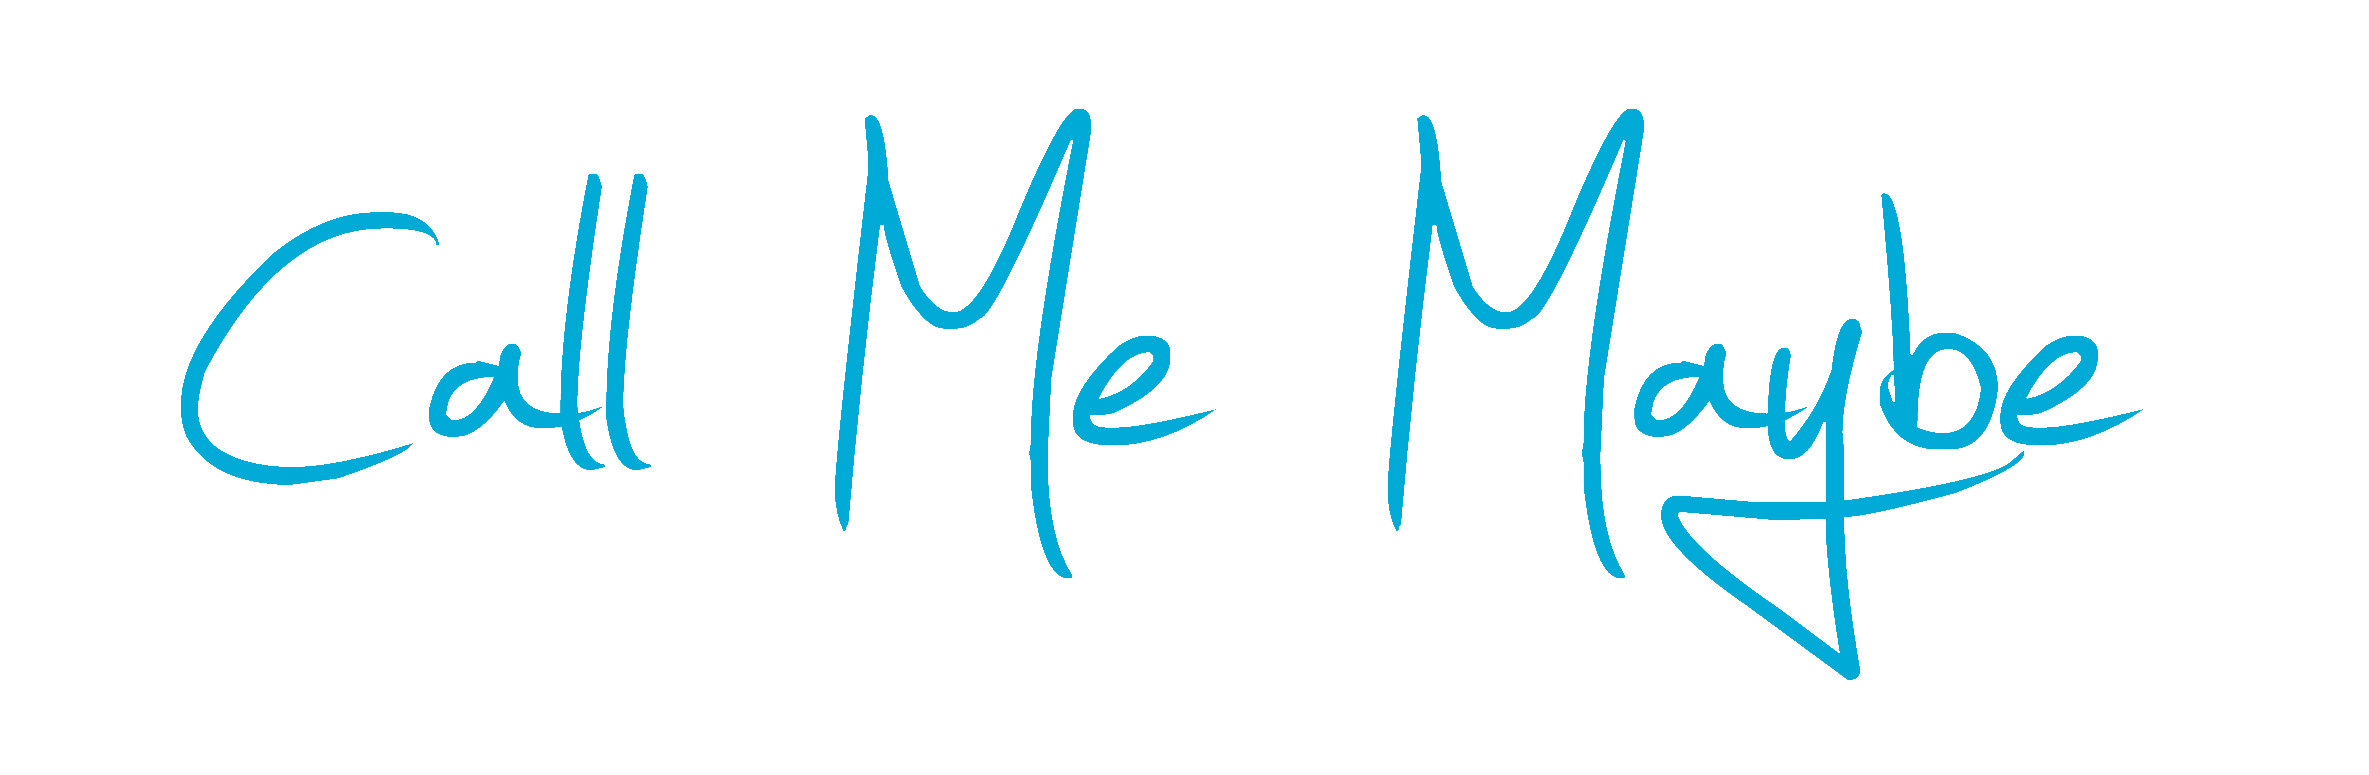 Call-Me-Maybe-Banner.png